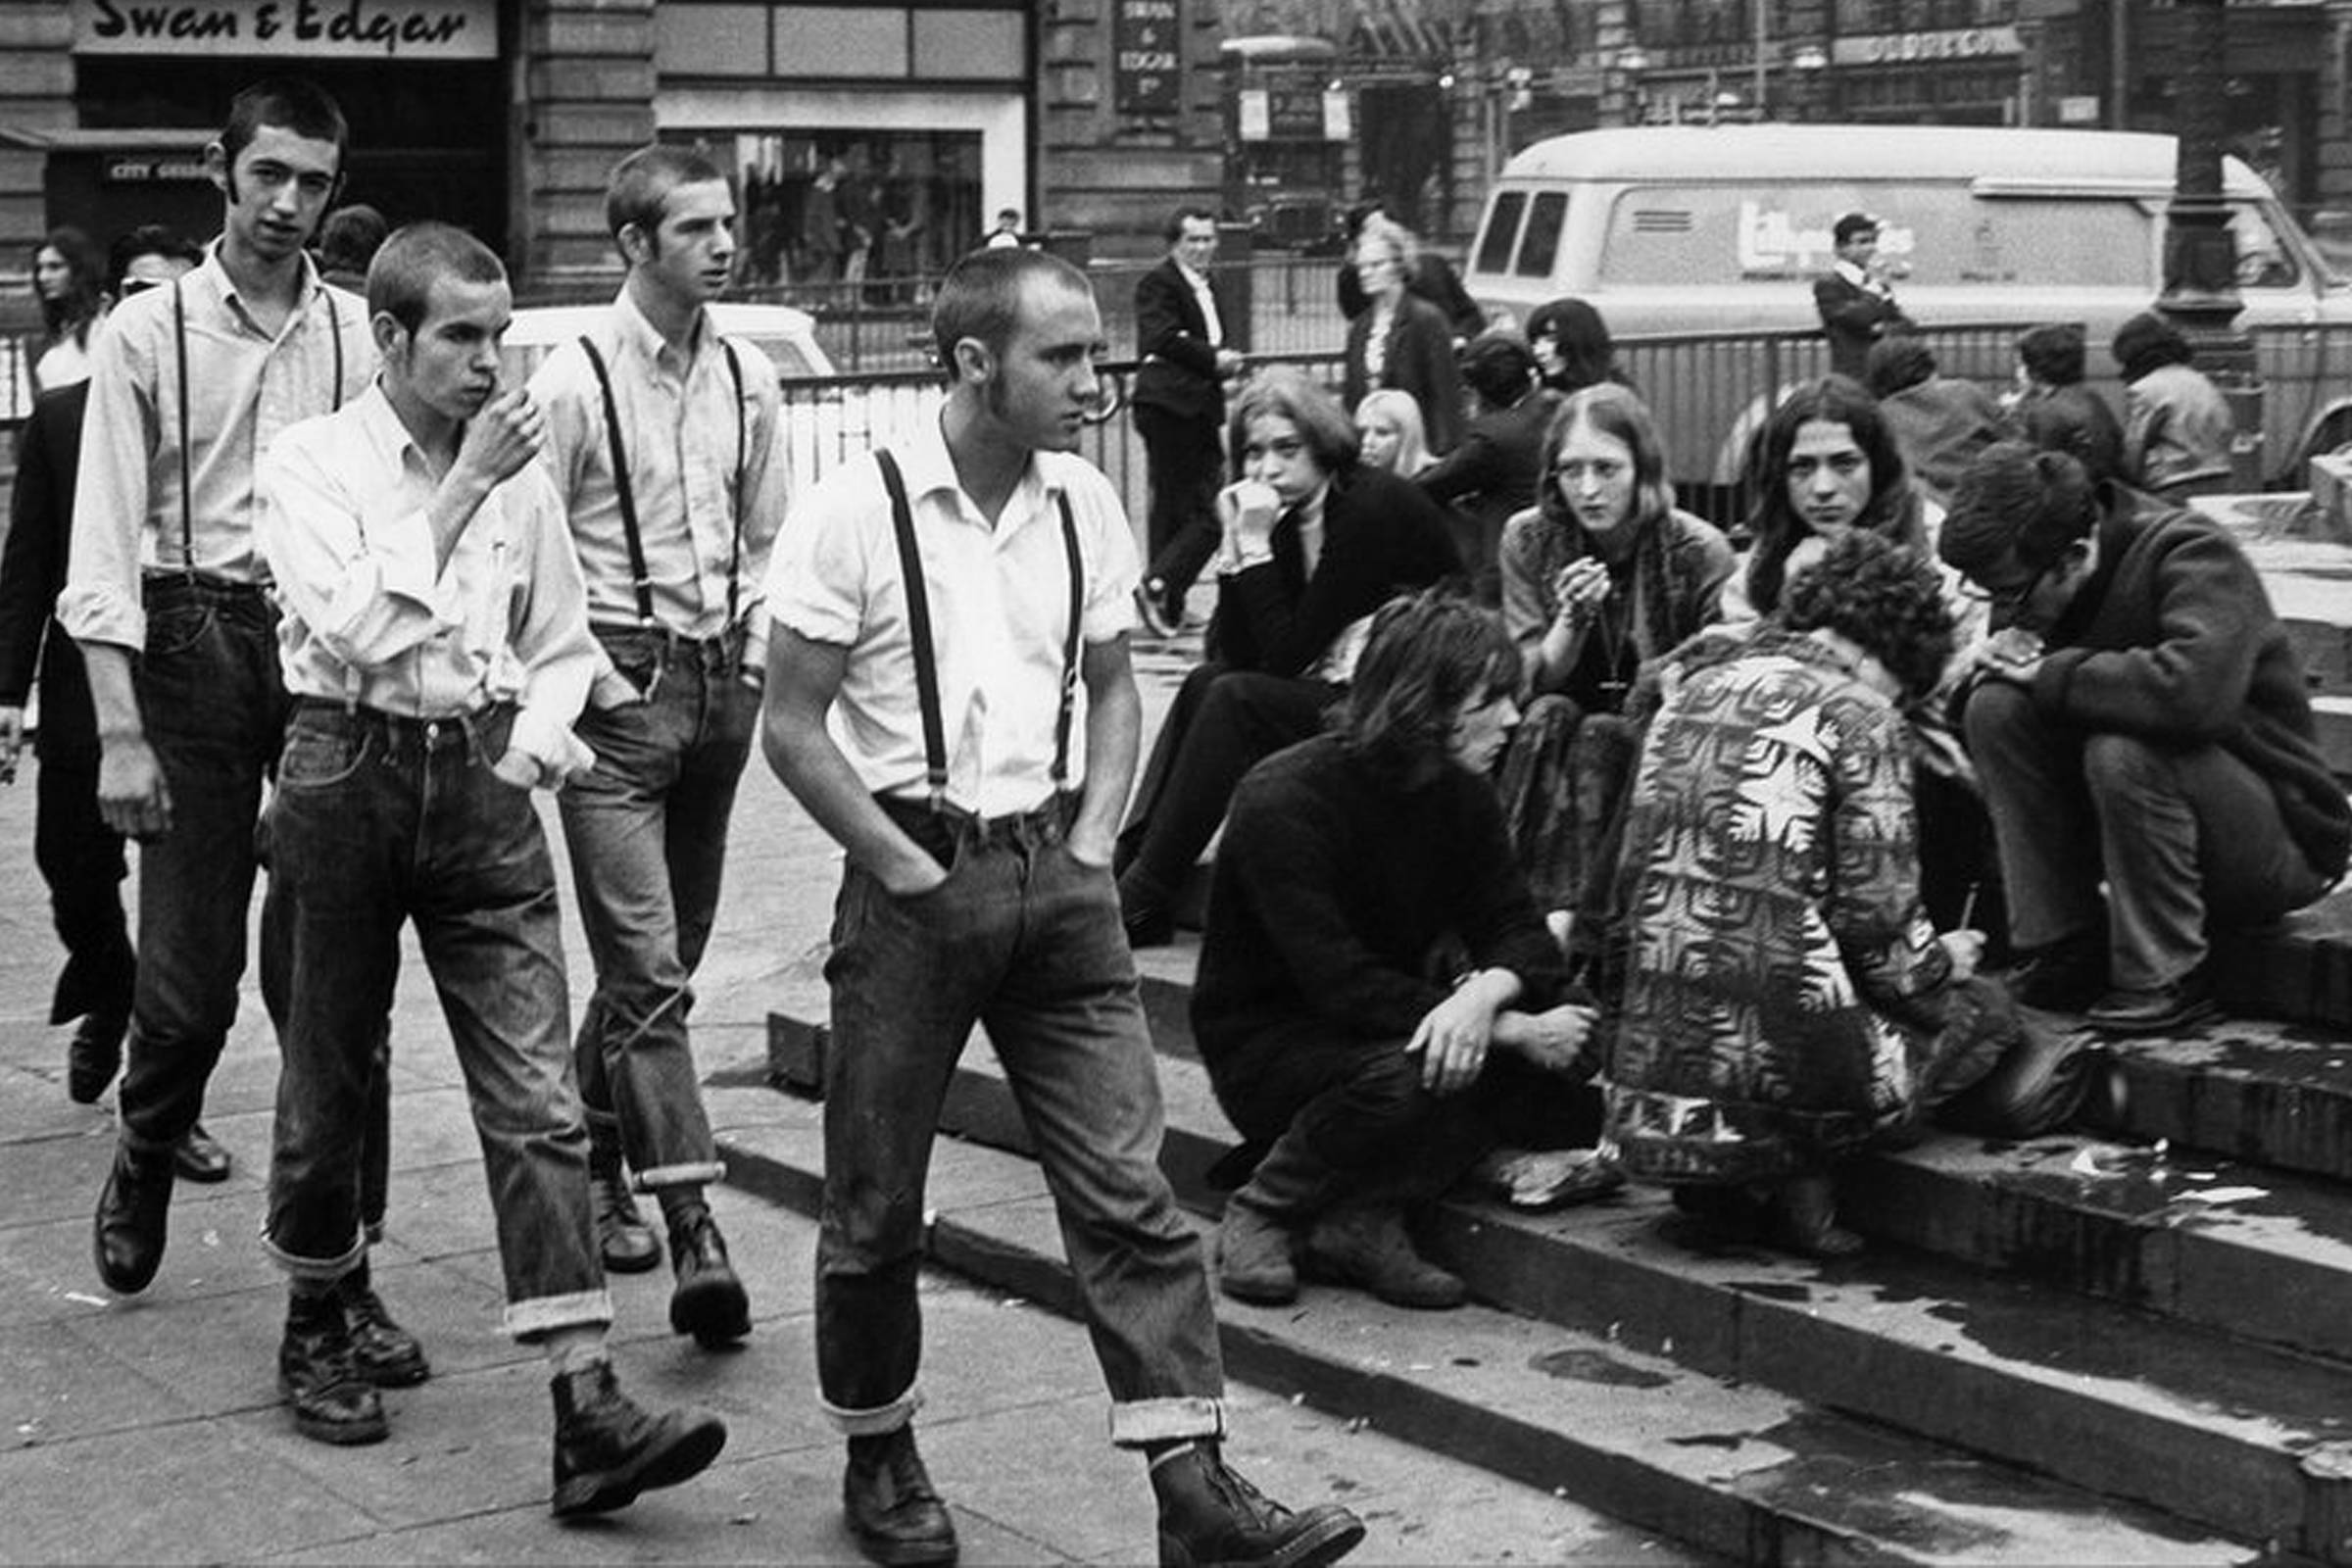 """On the Steps of Eros"" photographed by Terry Spencer; Skinheads and hippies sharing space in London's Piccadilly Circus in 1969"